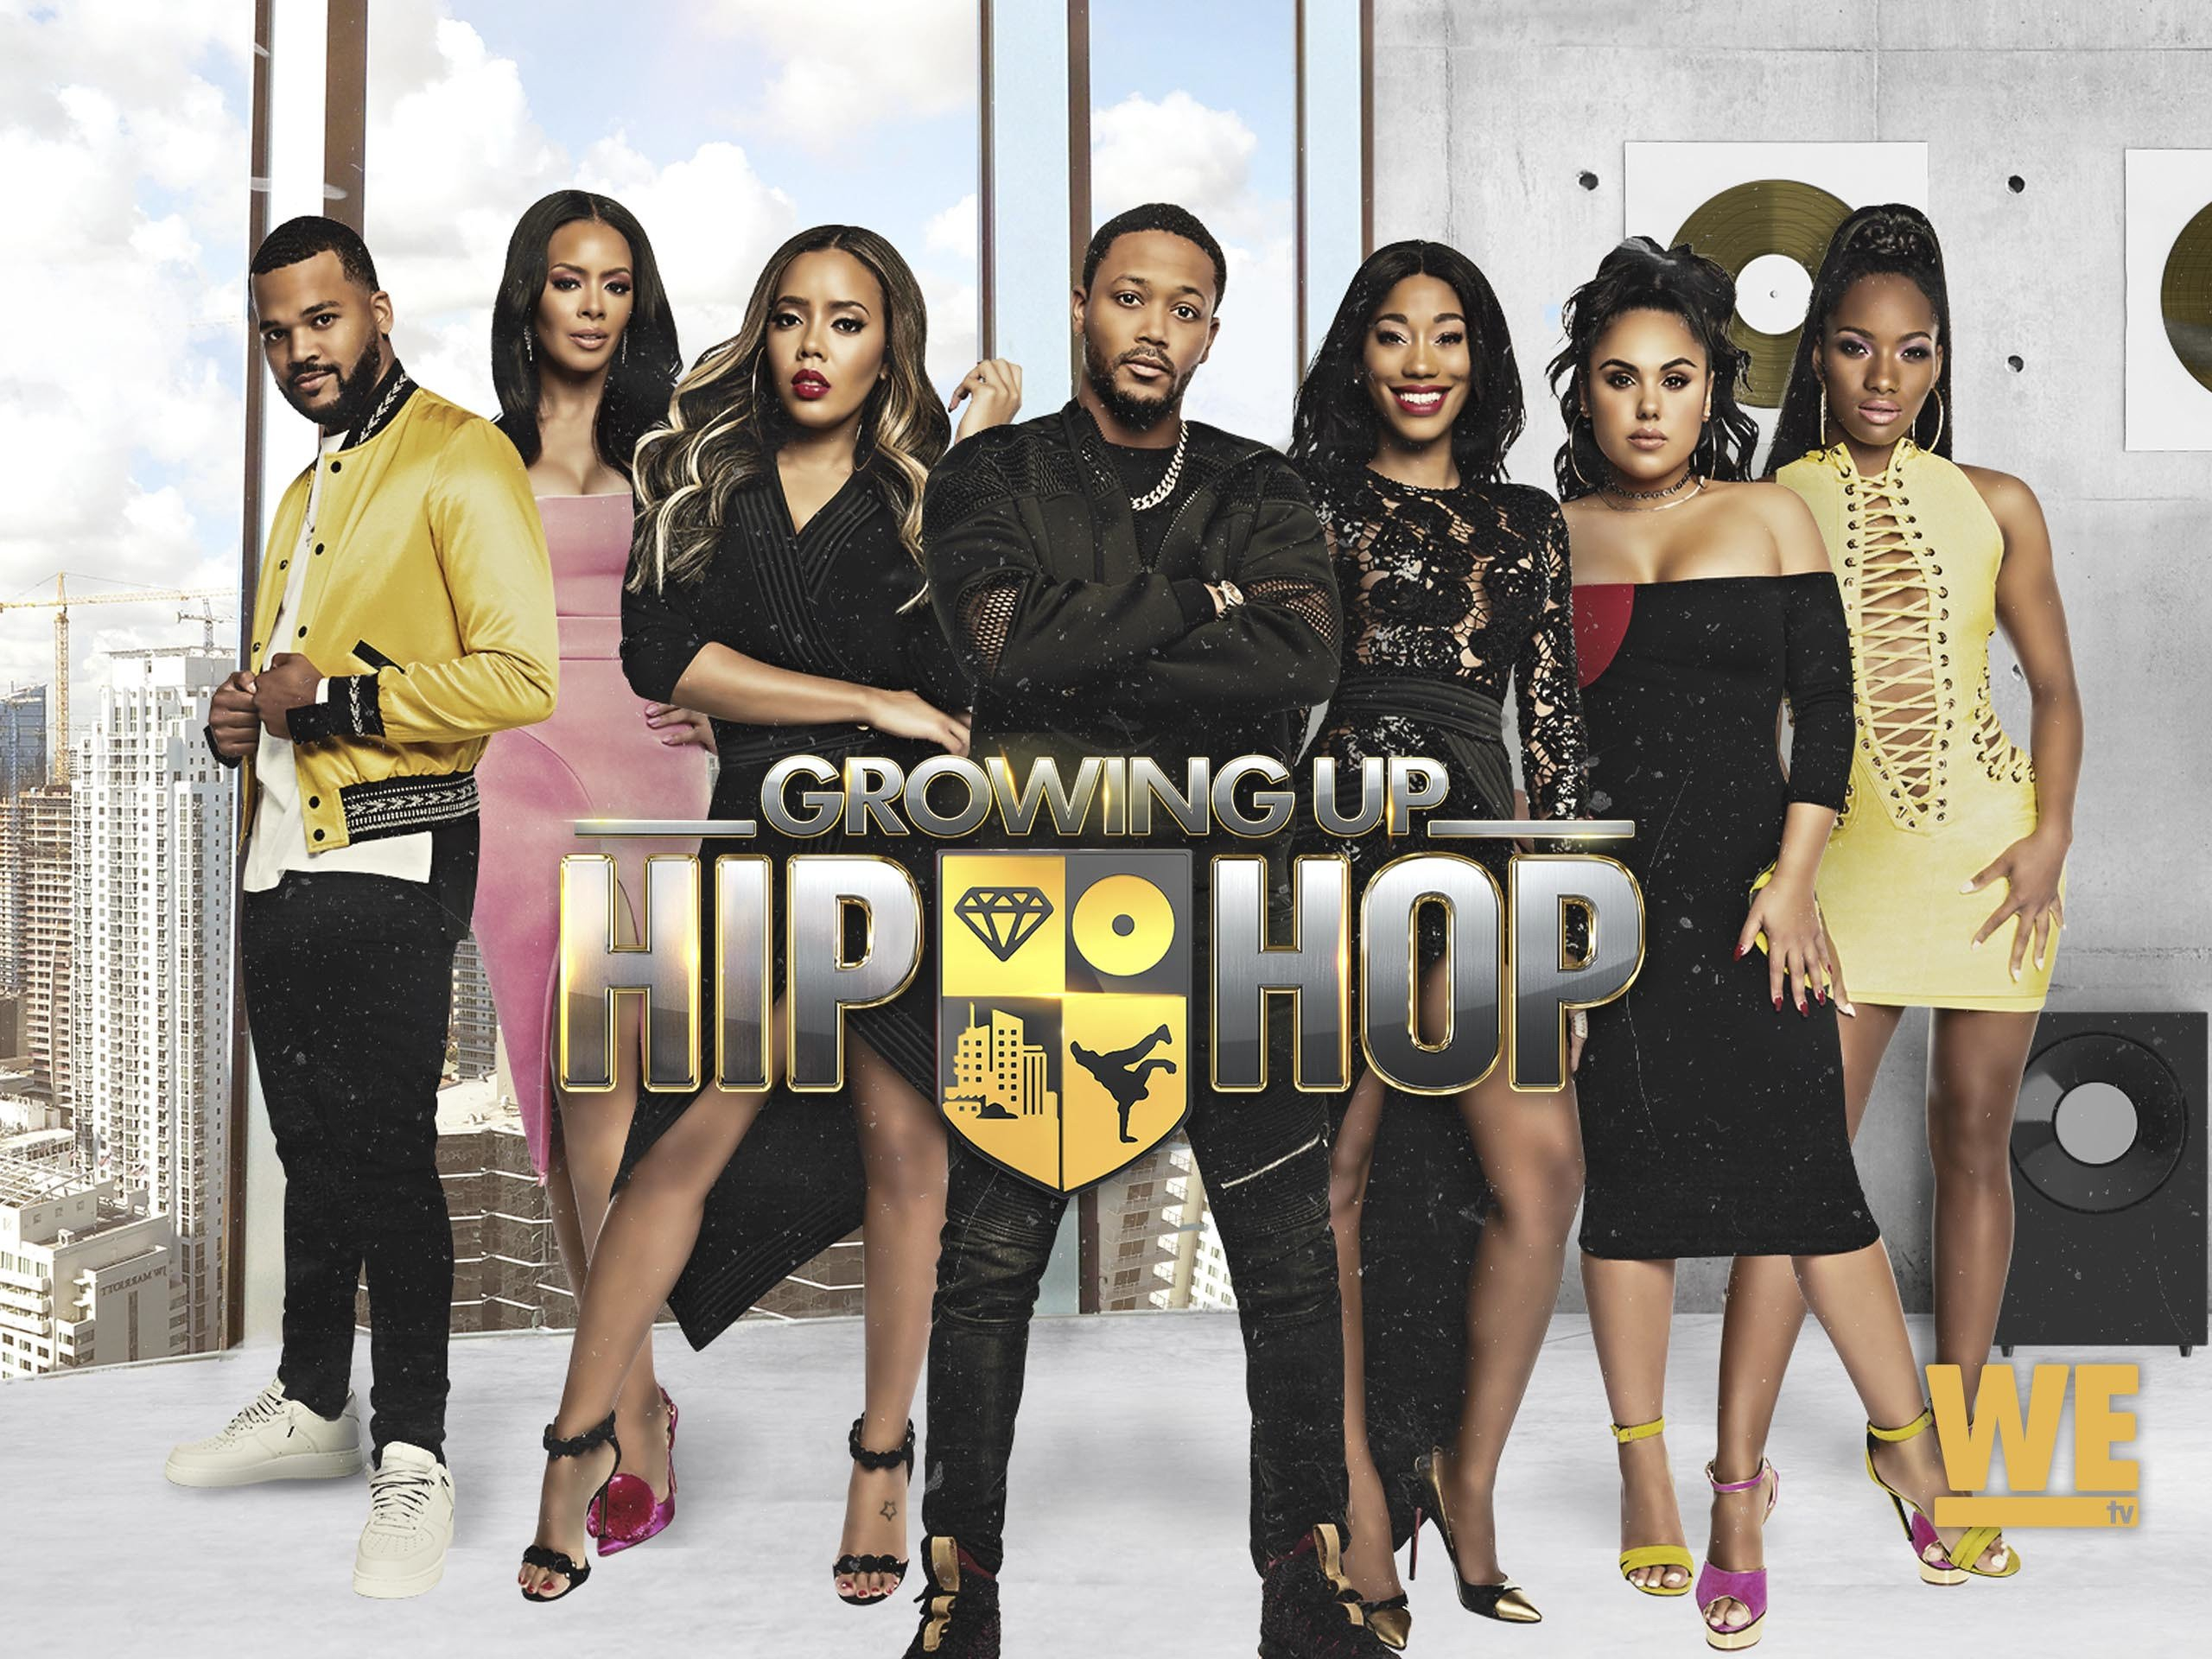 growing up hip hop atlanta season 1 episode 10